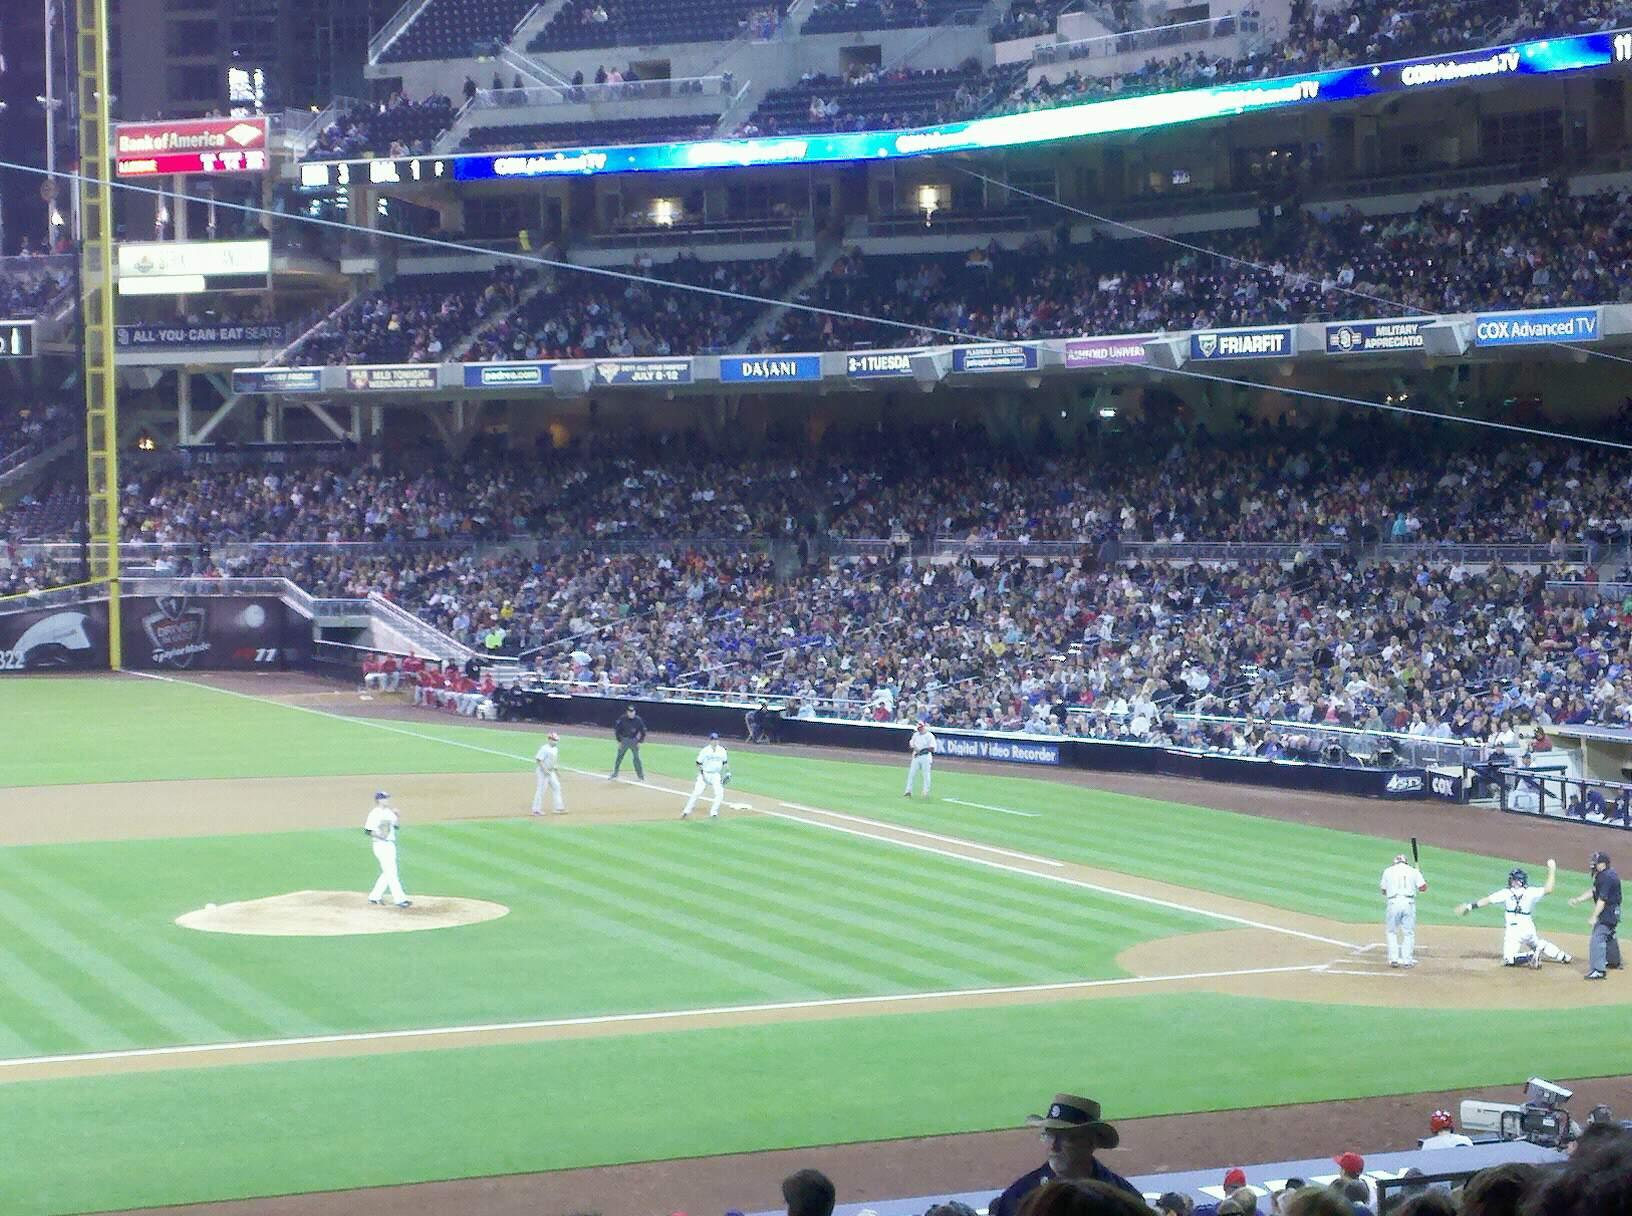 PETCO Park Section 114 Row 20 Seat 16